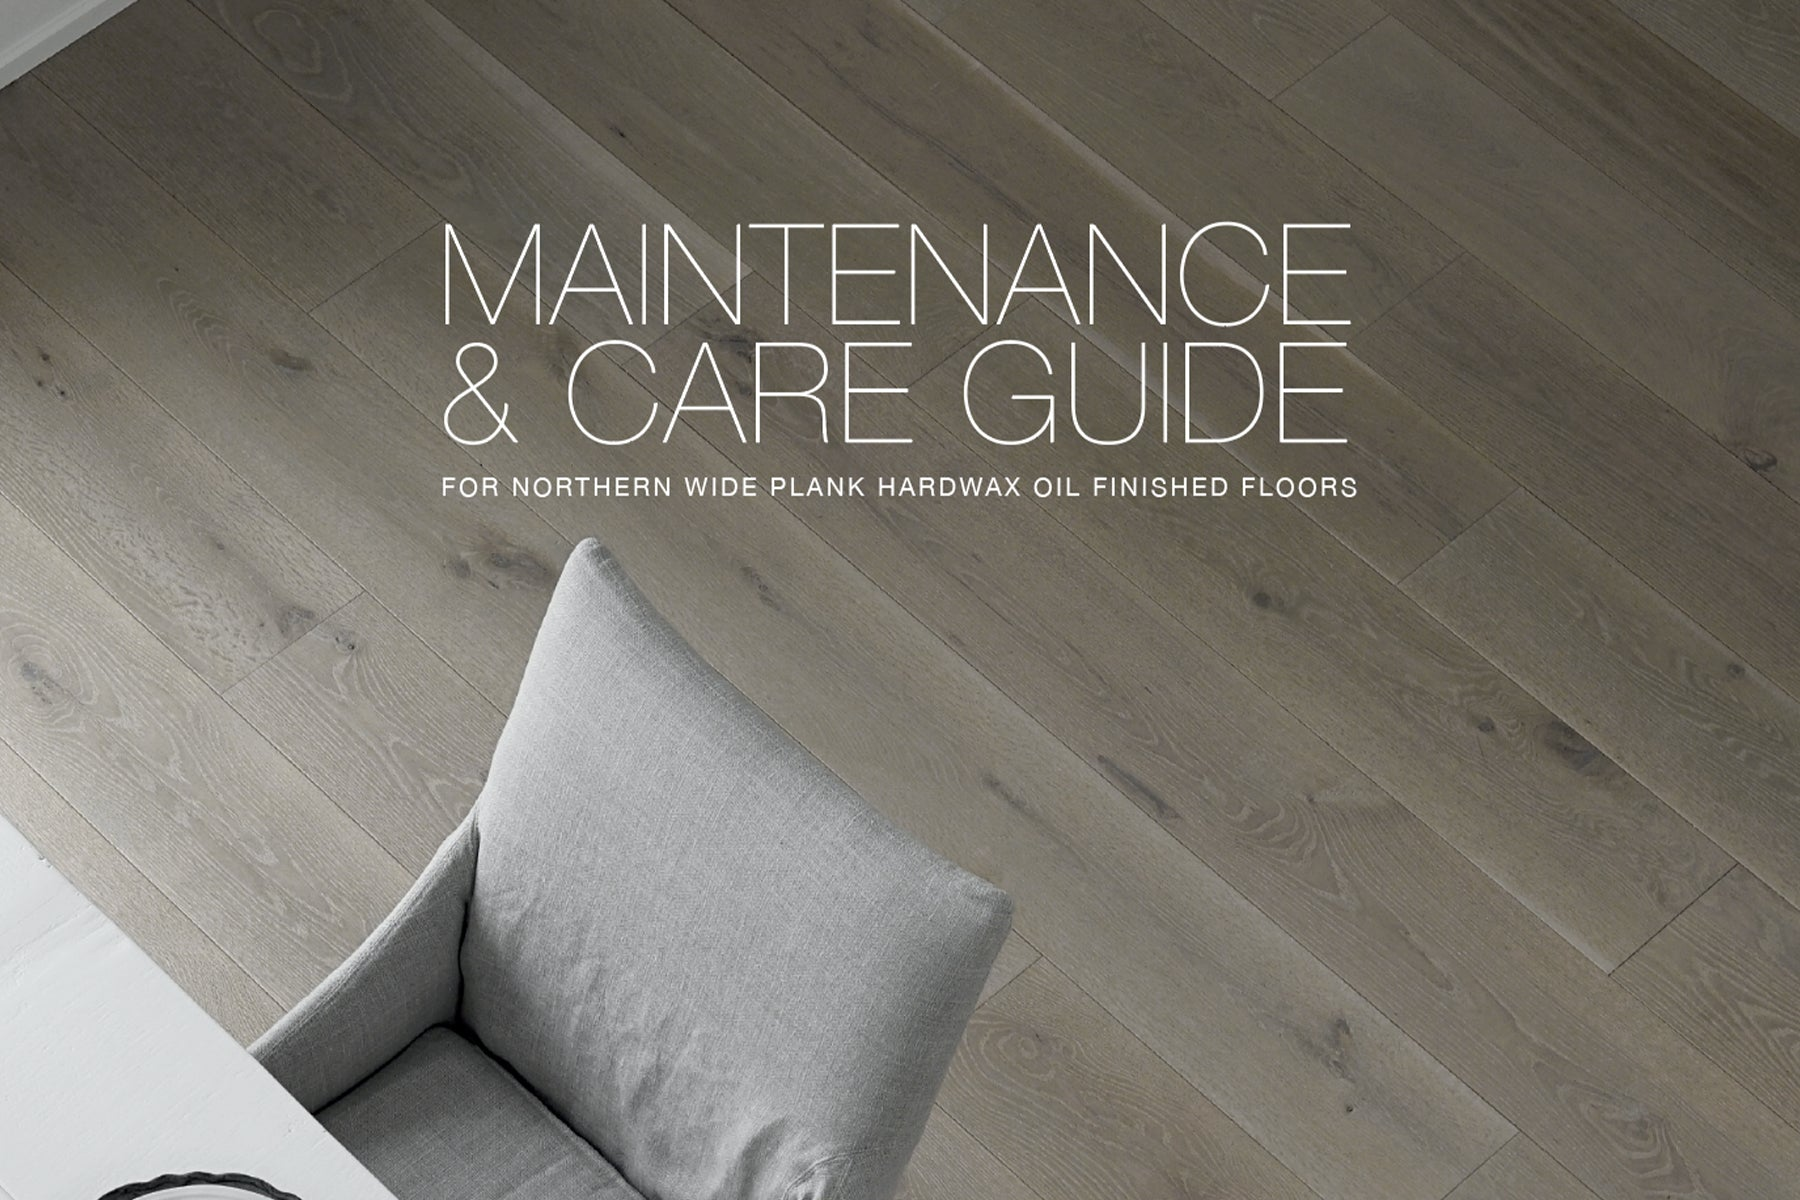 Maintenance & Care Guide For NWP Hardwax Oiled Wood Floors